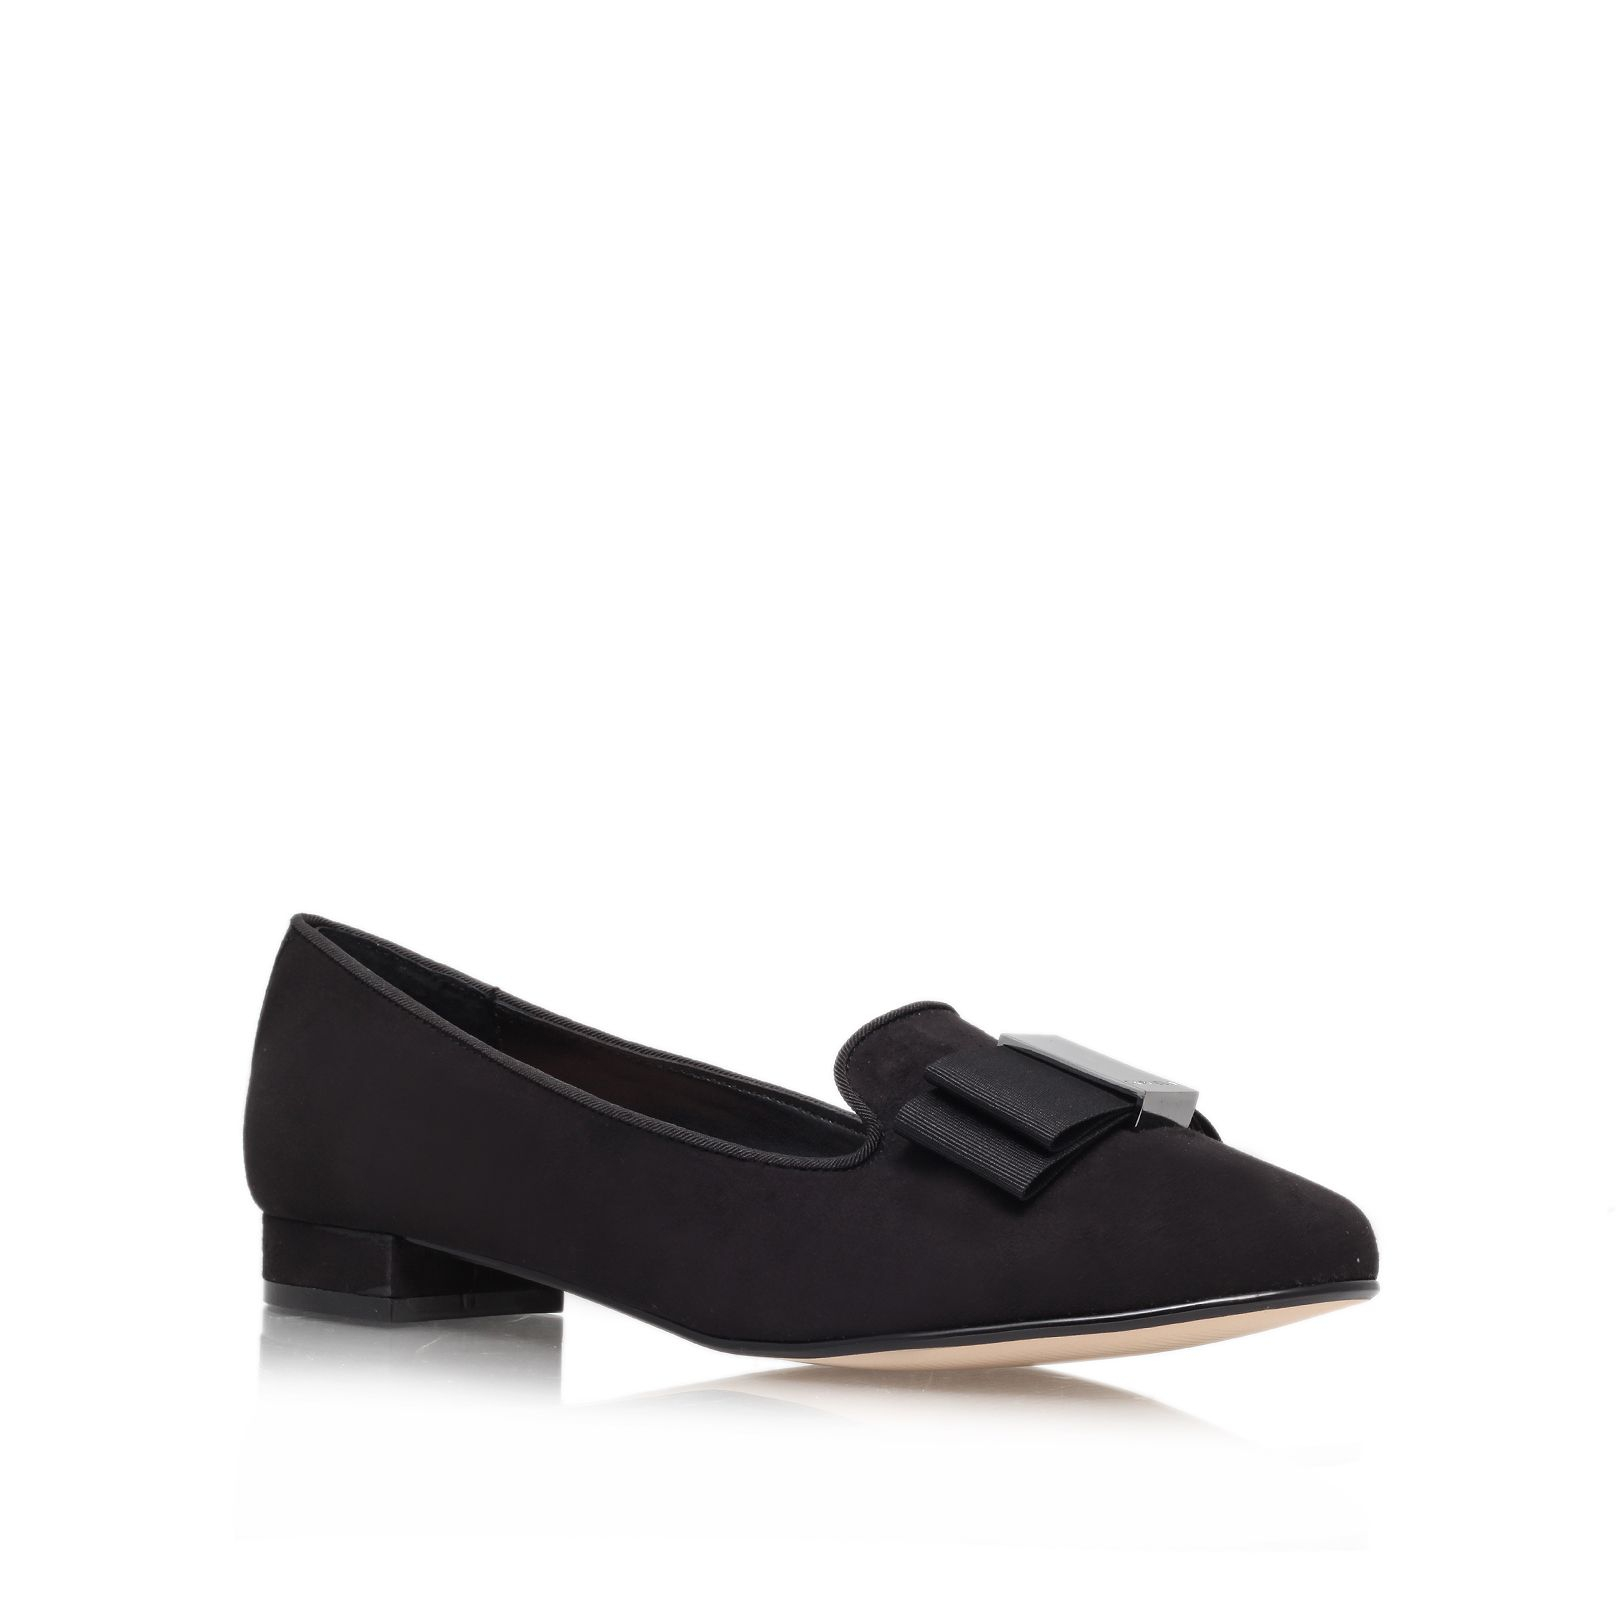 Kurt Geiger Black Court Shoes